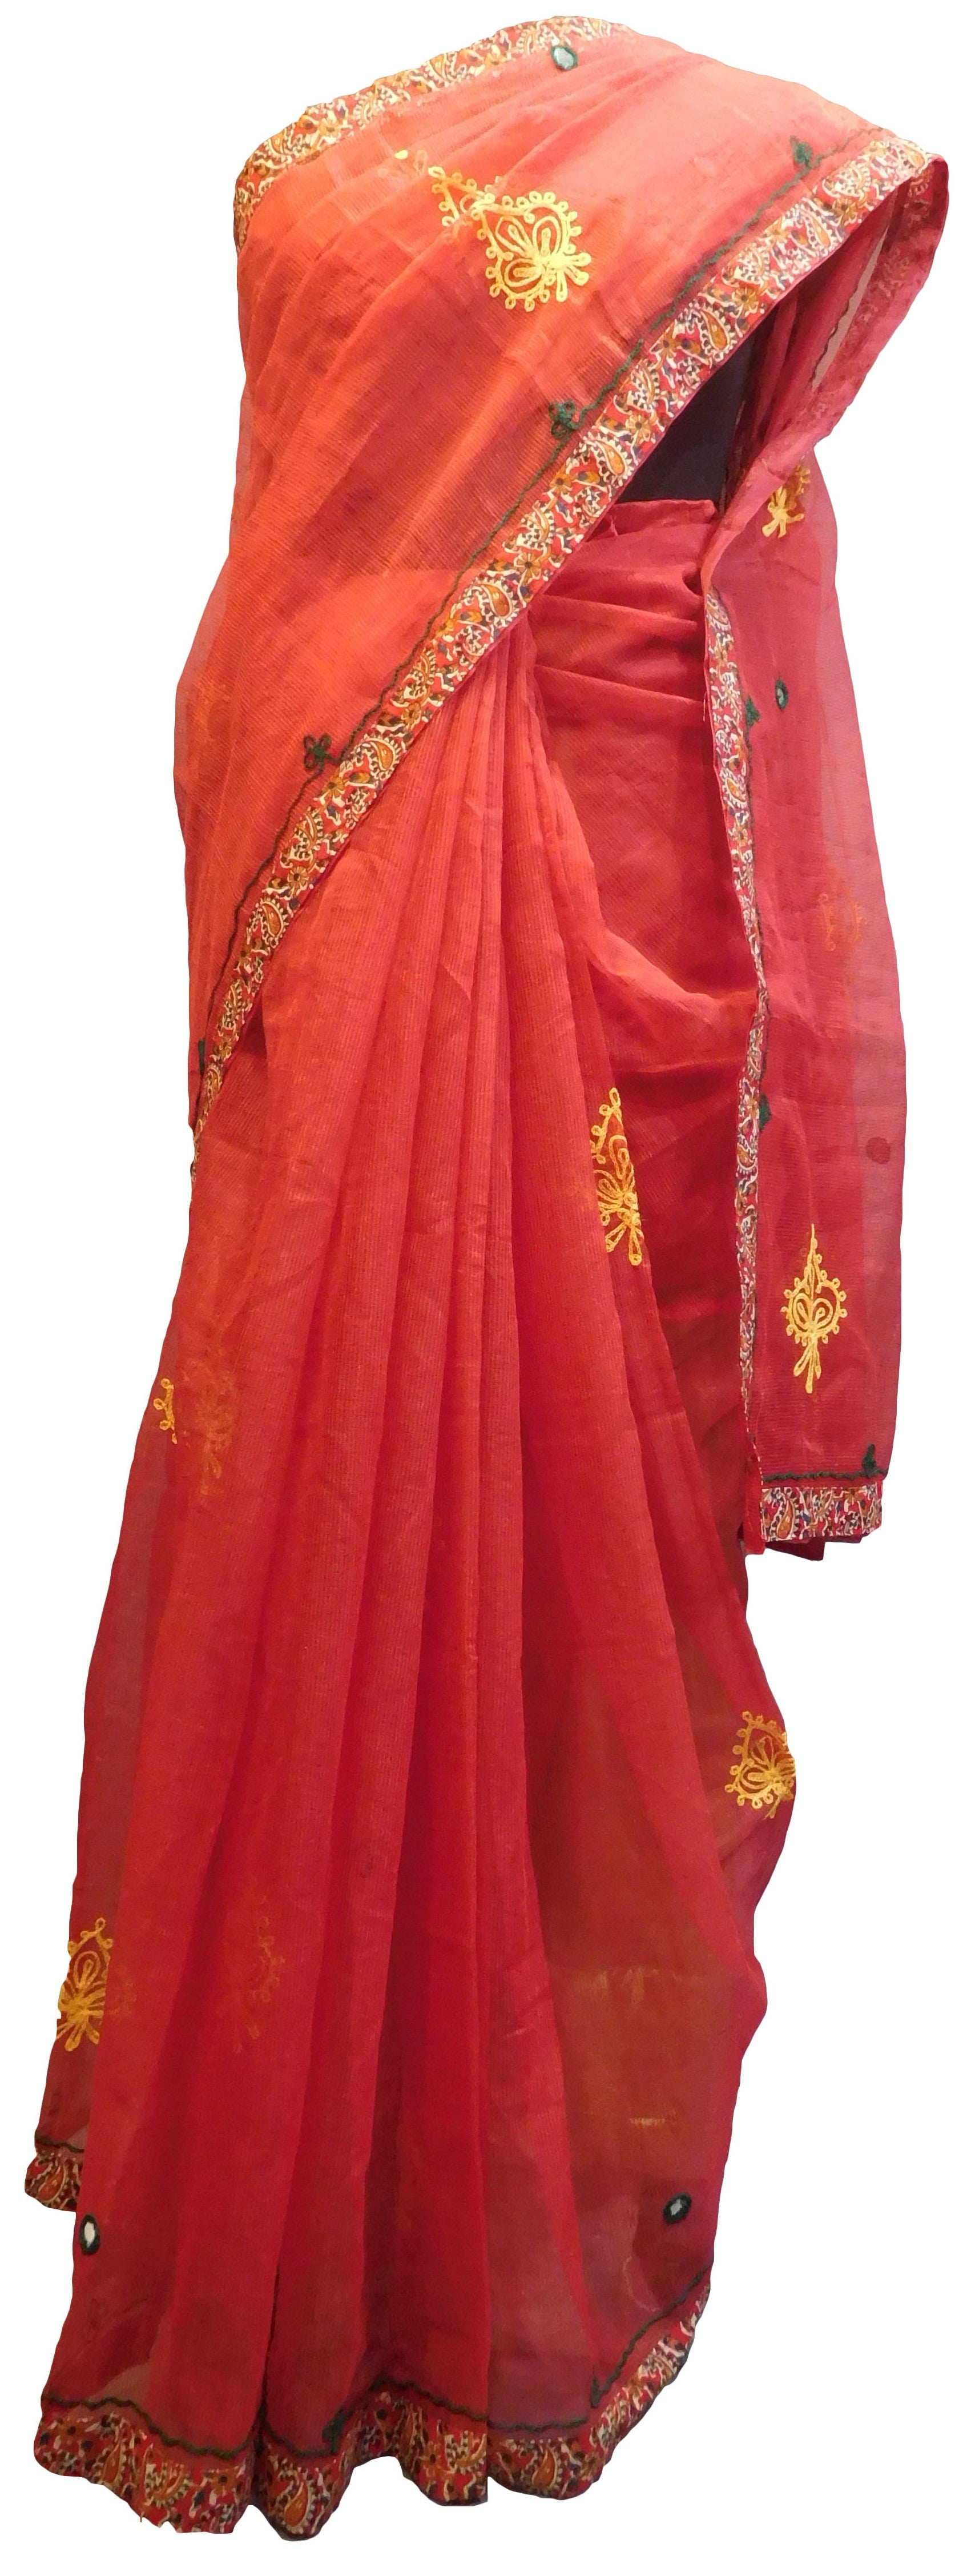 SMSAREE Red Designer Wedding Partywear Supernet (Cotton) Thread Hand Embroidery Work Bridal Saree Sari With Blouse Piece E922